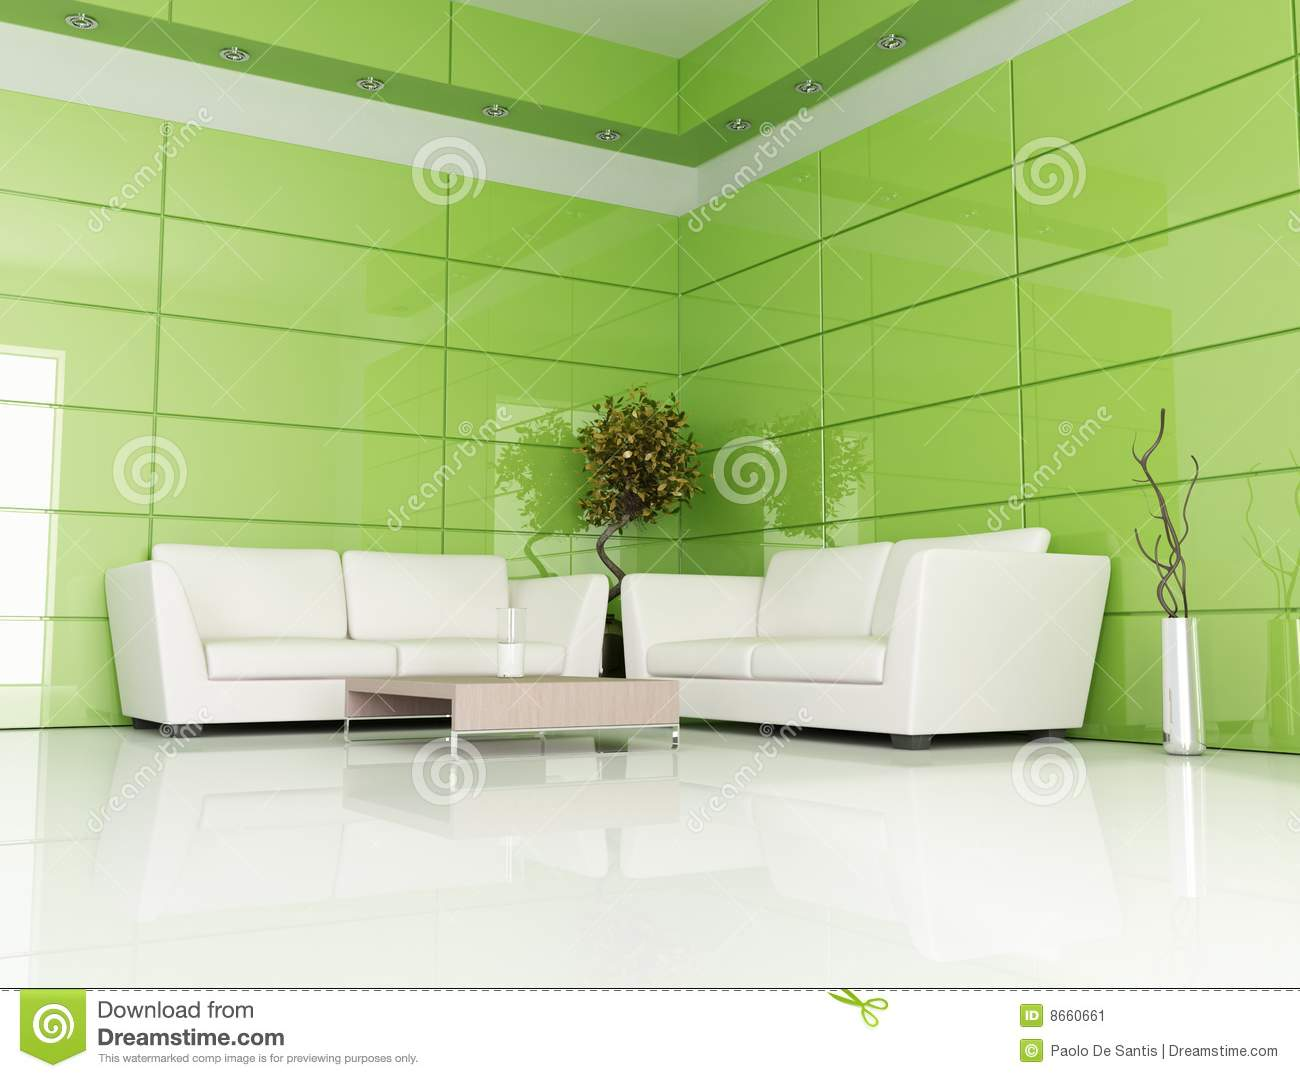 Green And White Living Room Stock Illustration